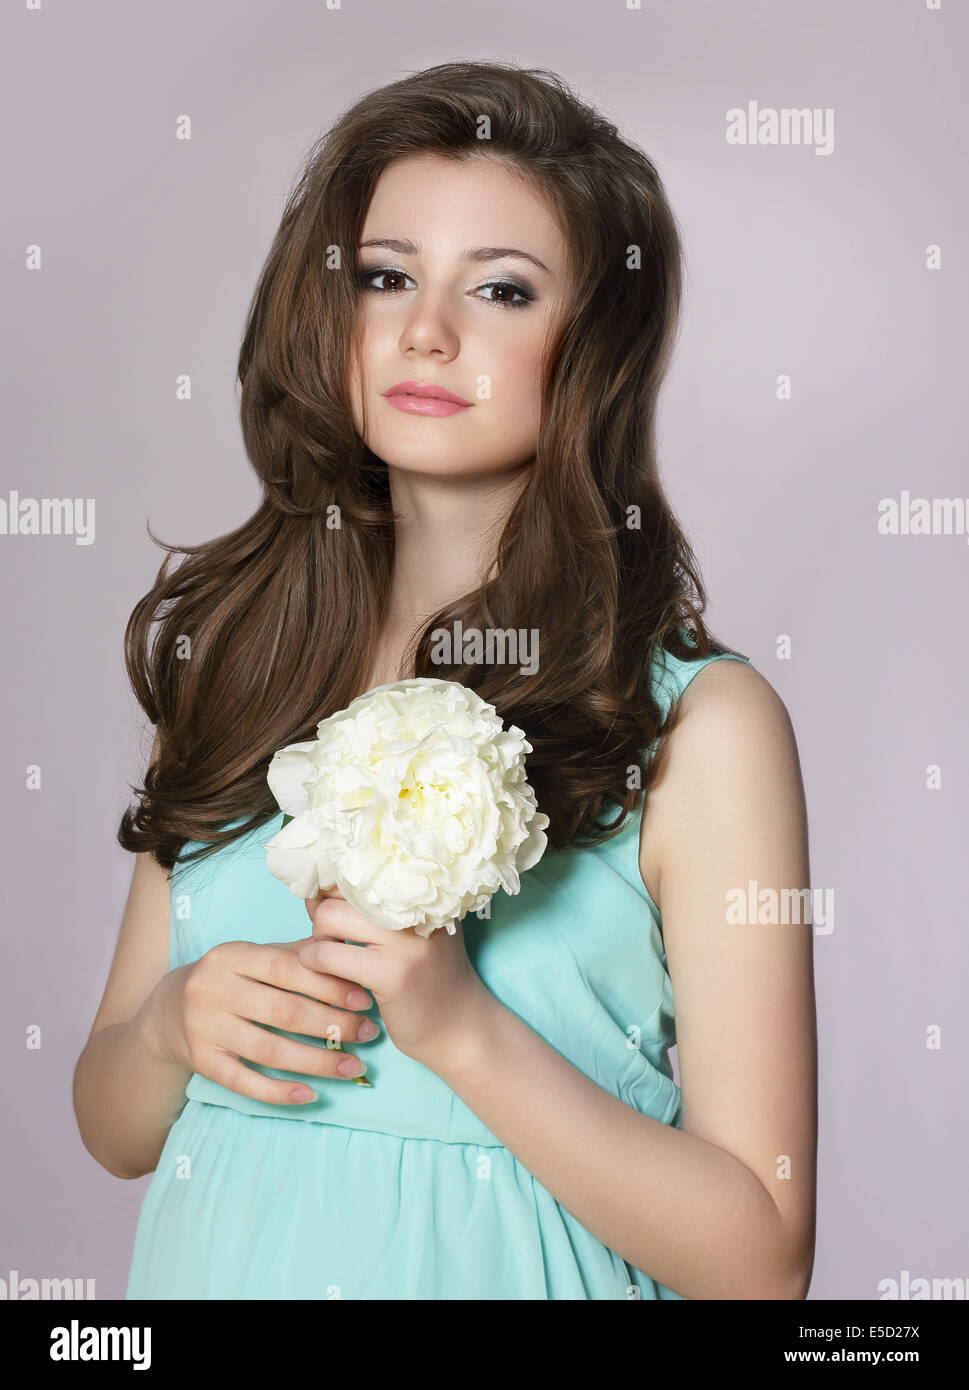 Nostalgia. Young Adorable Teen Girl with Peony Flower - Stock Image